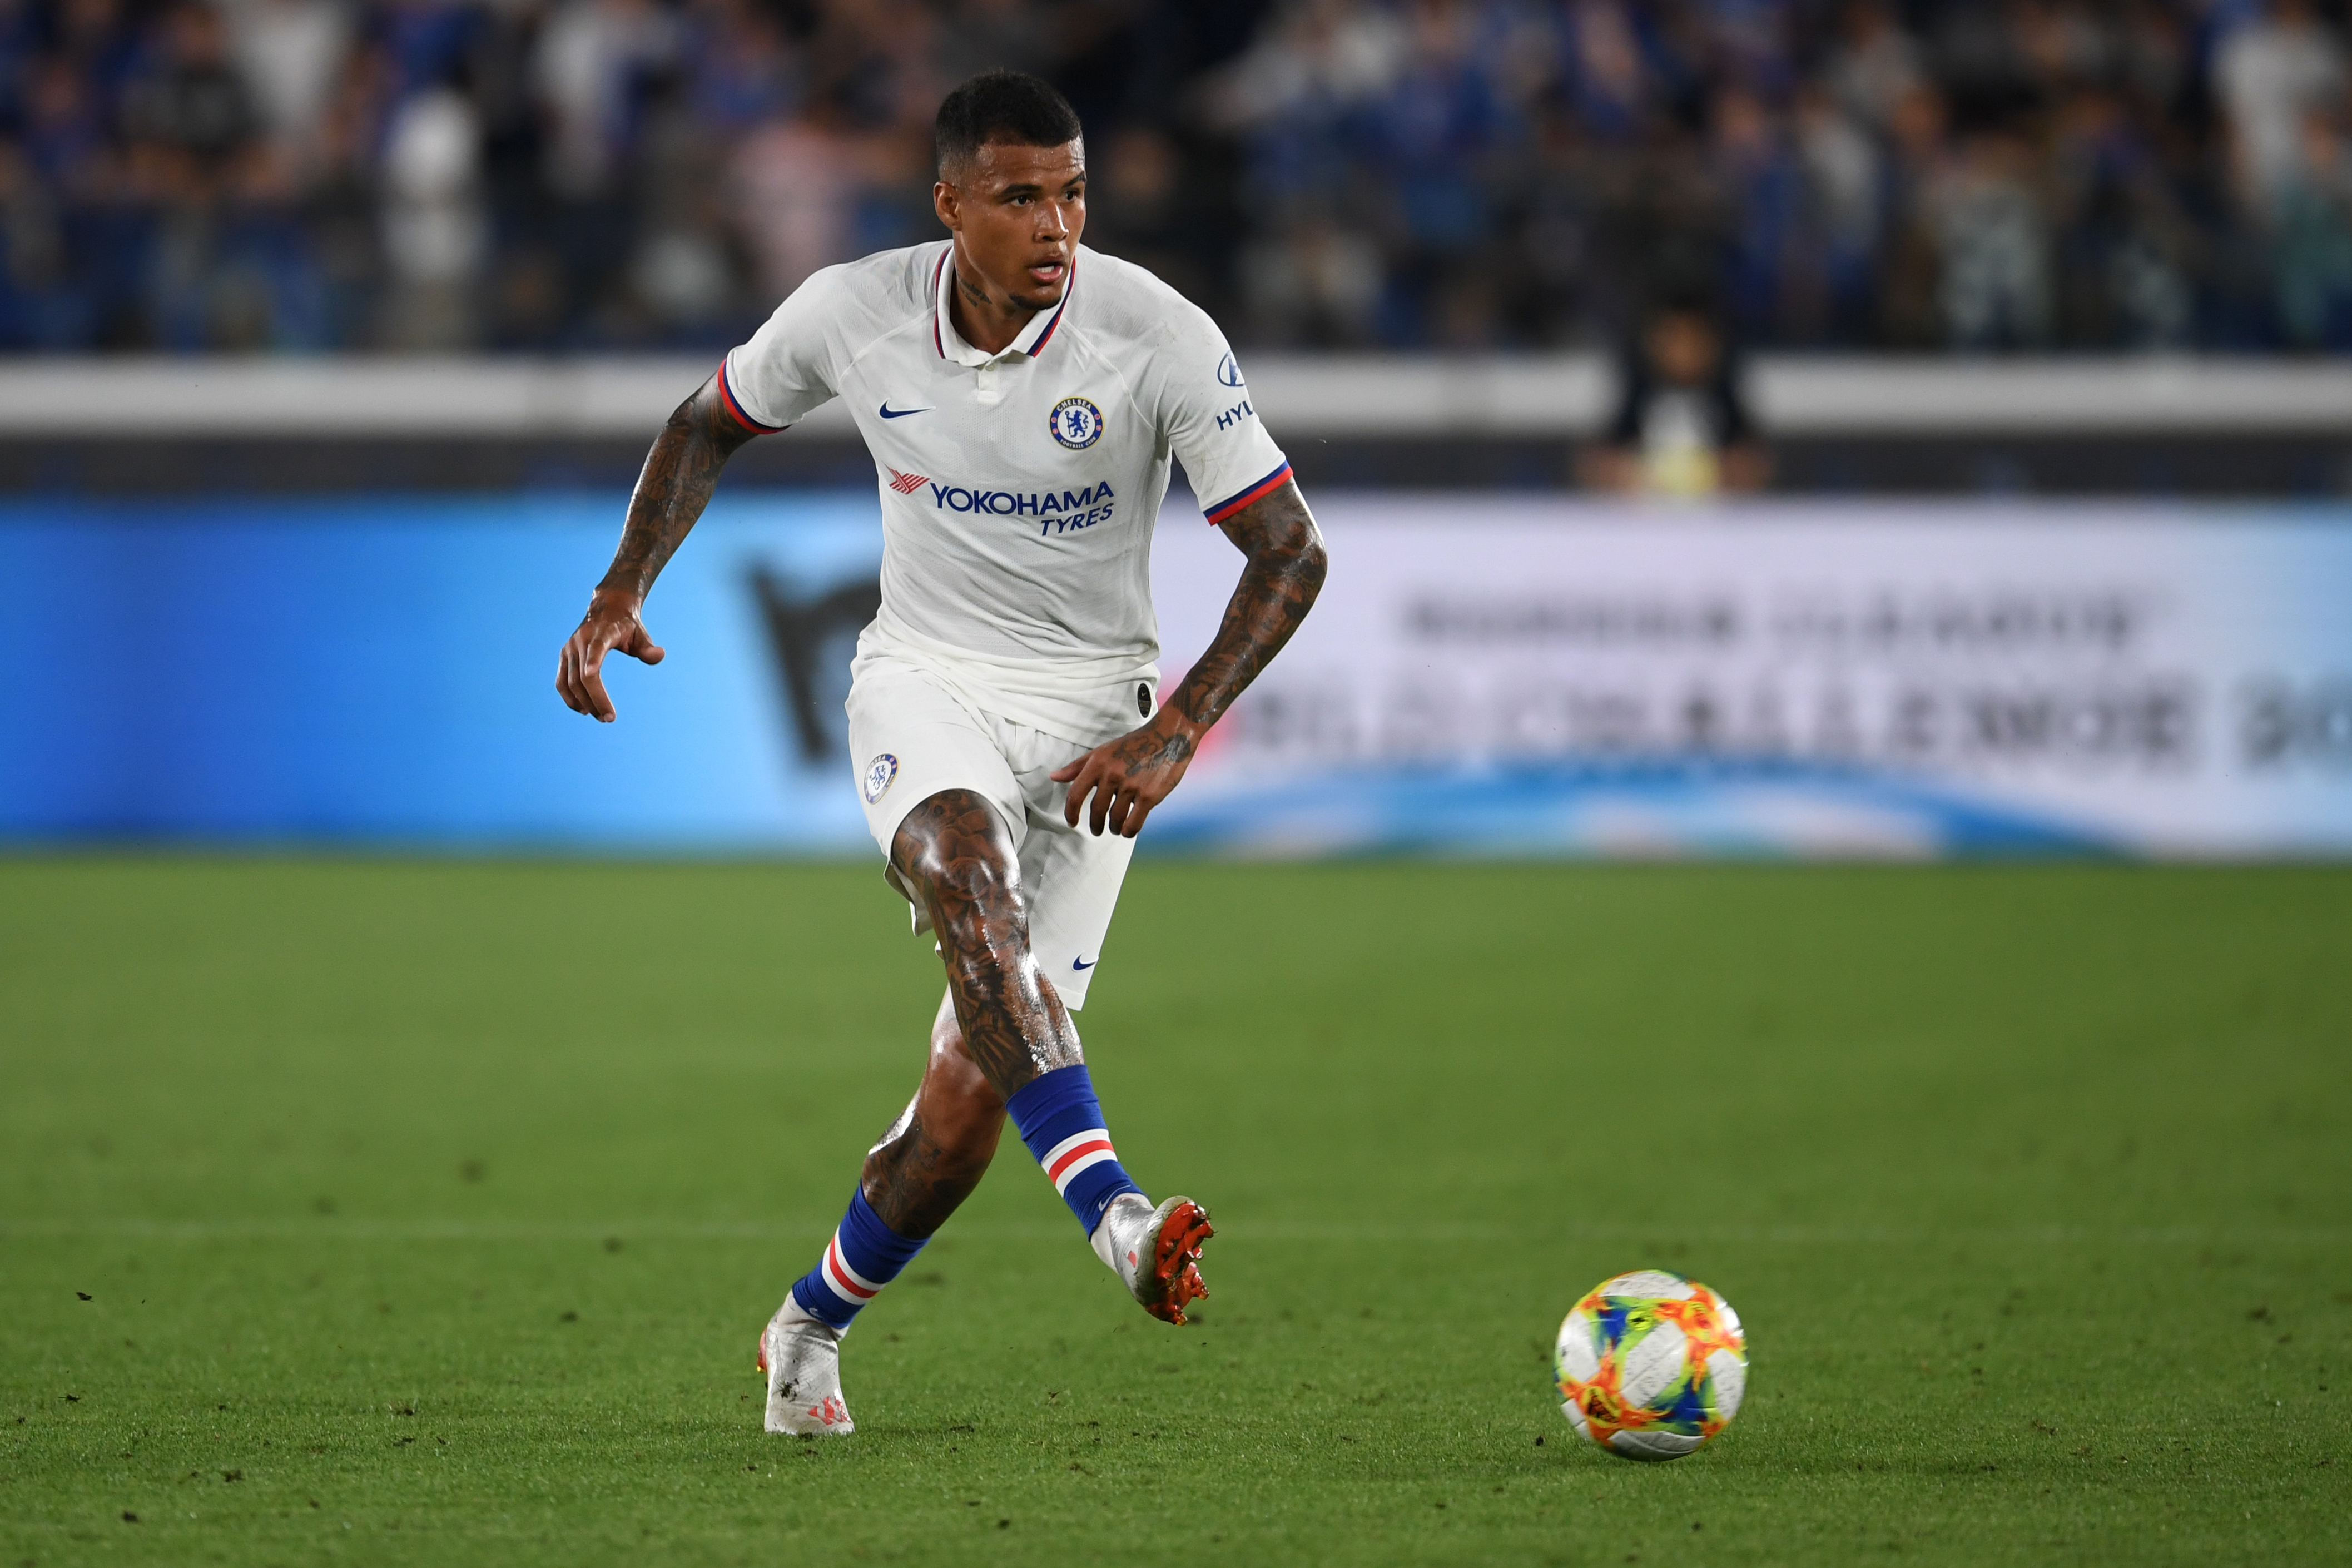 Chelsea's Kenedy set to sign new contract, head to Reading on loan deal — reports